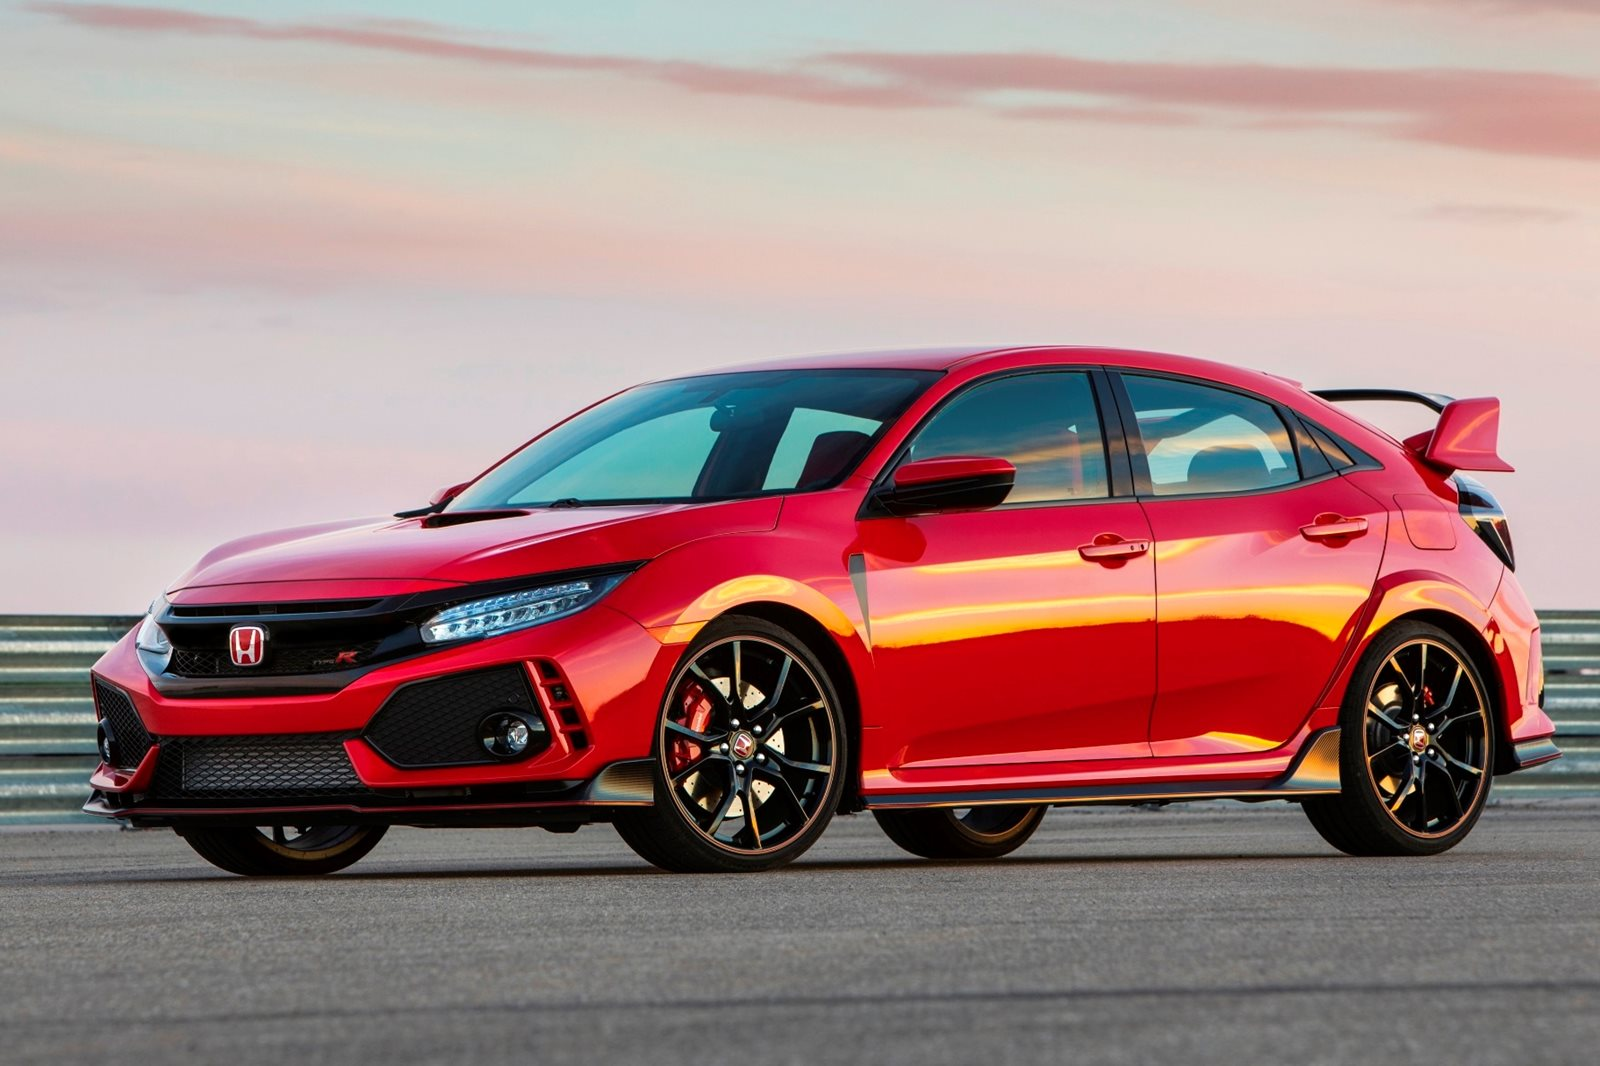 2018 honda civic type r review trims specs and price carbuzz. Black Bedroom Furniture Sets. Home Design Ideas